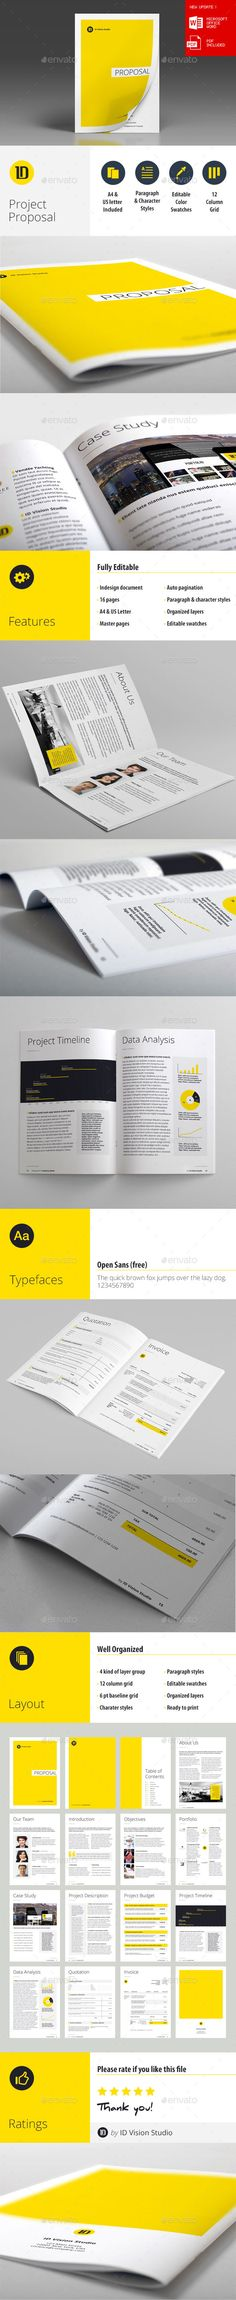 Project Proposal Template 005 Minimalist Project proposal - project proposal template word